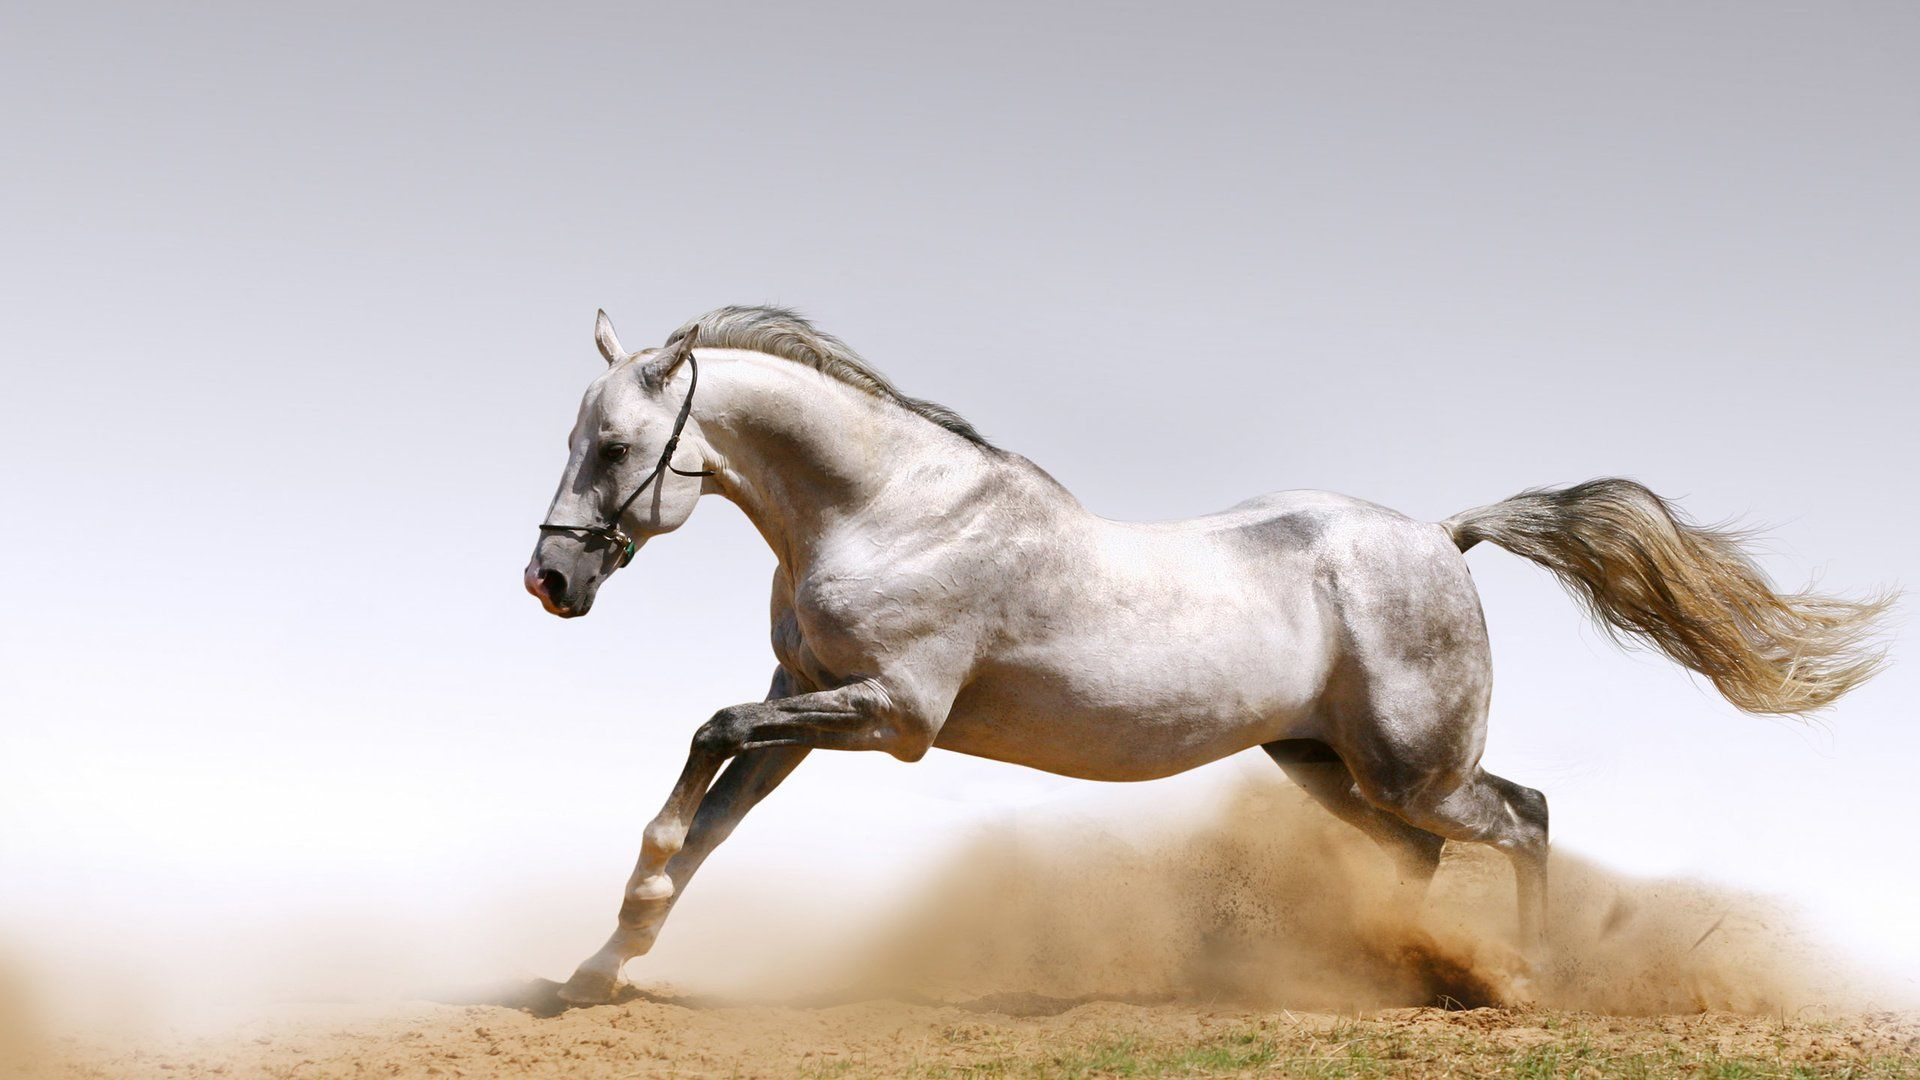 Wallpaper Desktop Horses